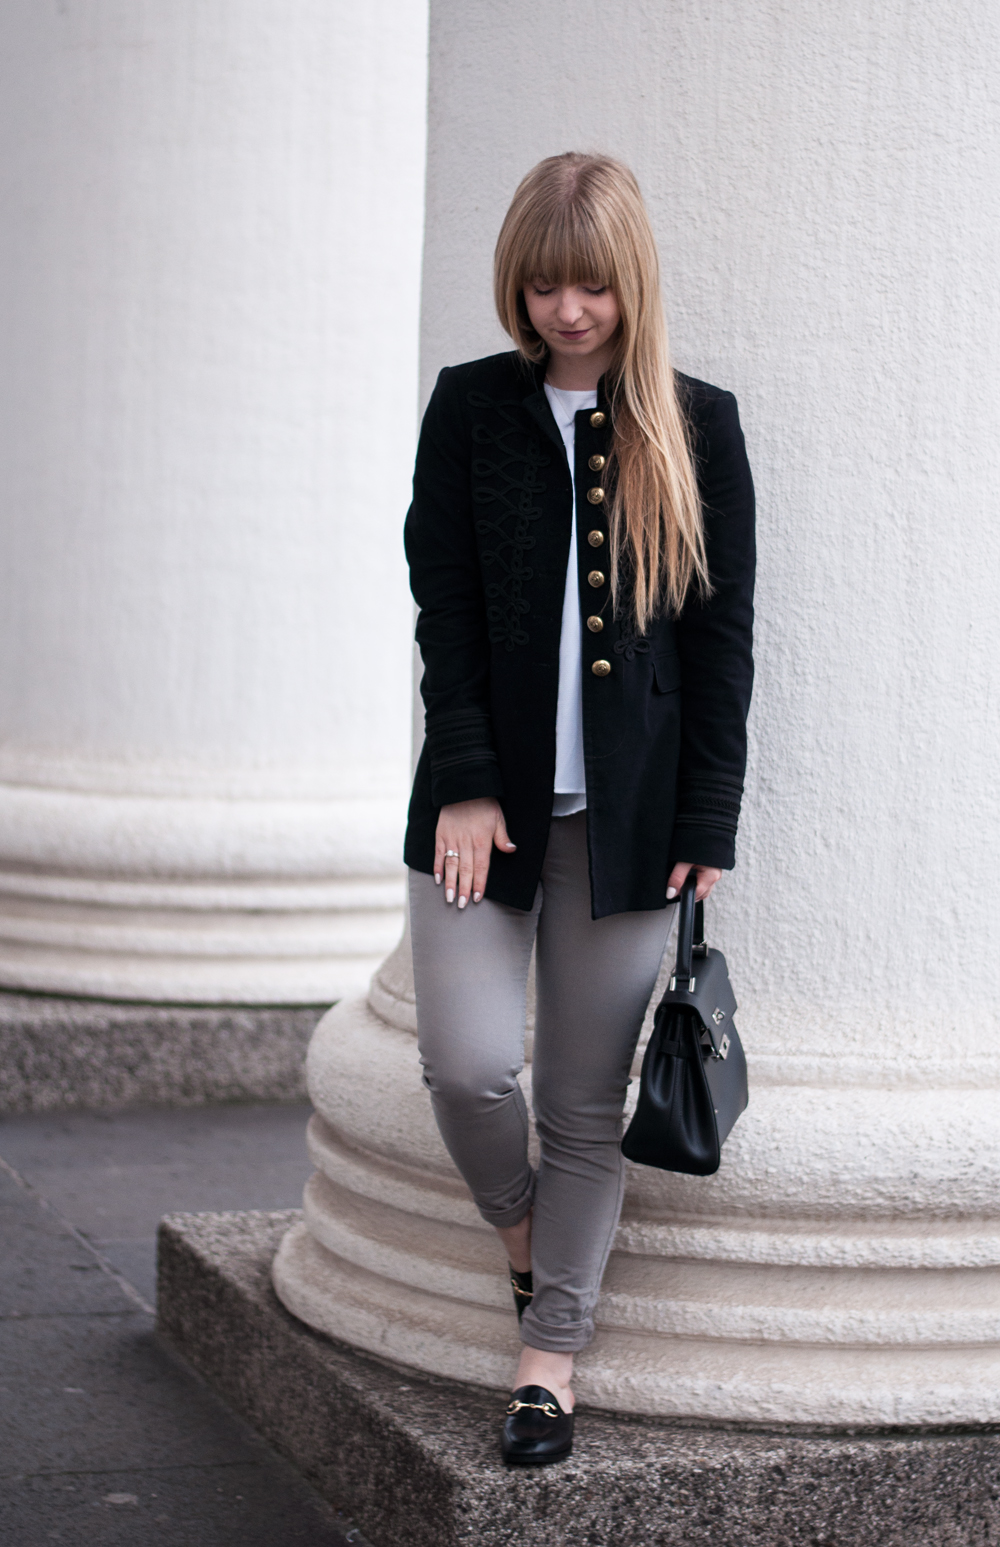 outfit-modeblogger-mules-gucci-style-zaful-black-military-coat-zara-mantel-skinny-jeans-winter-look-duisburg-laraira-5